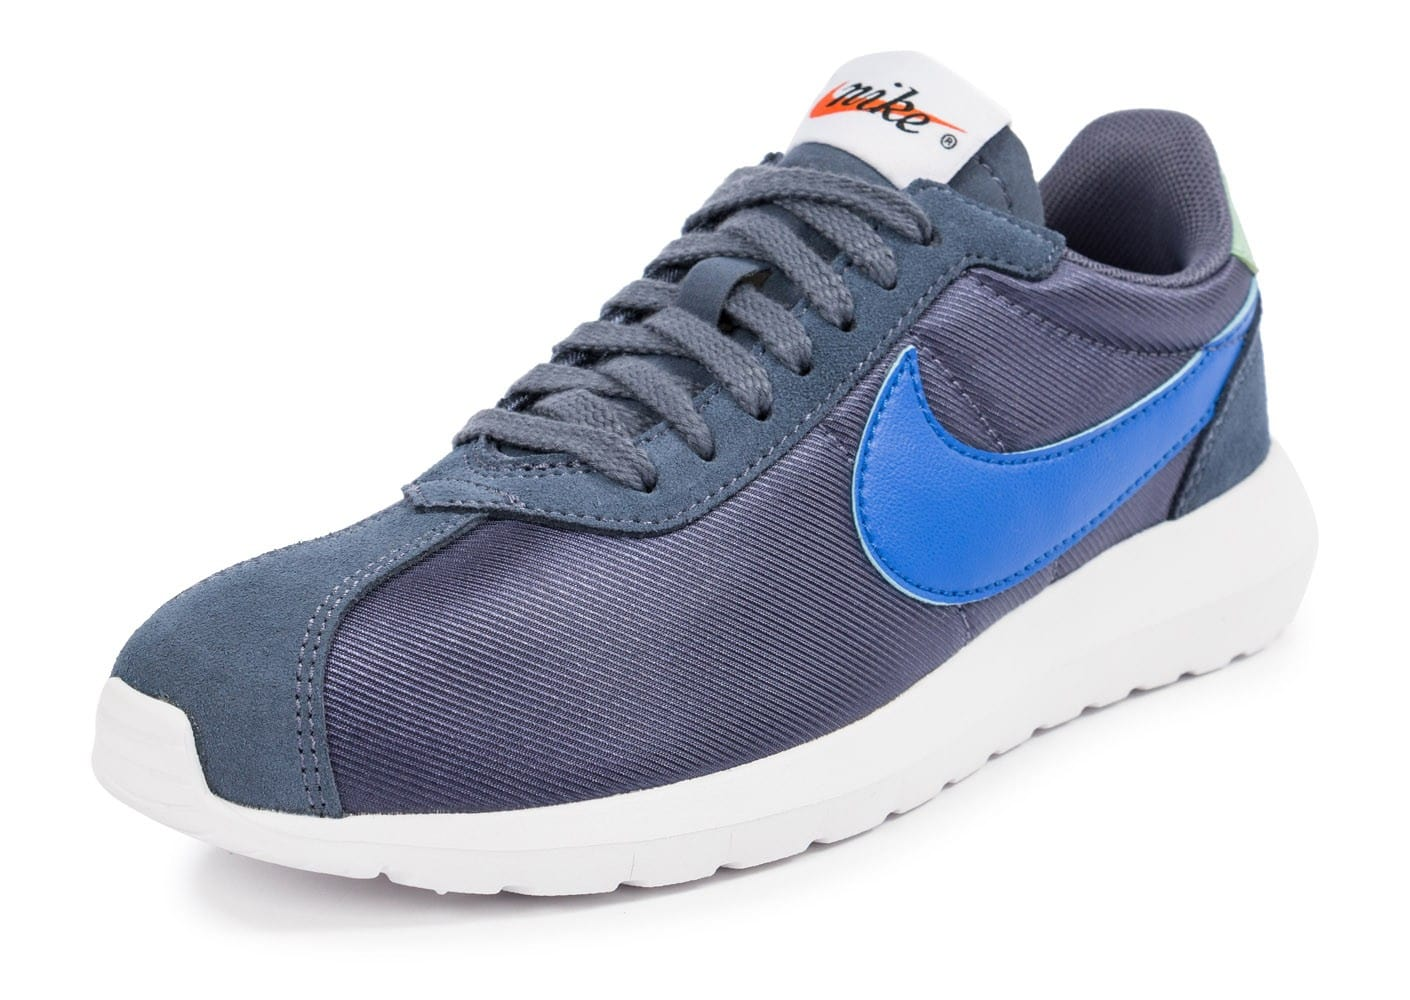 watch 82e8a d7fe8 nike force ones air chaussures - nike roche one ld 1000 - Bing ...